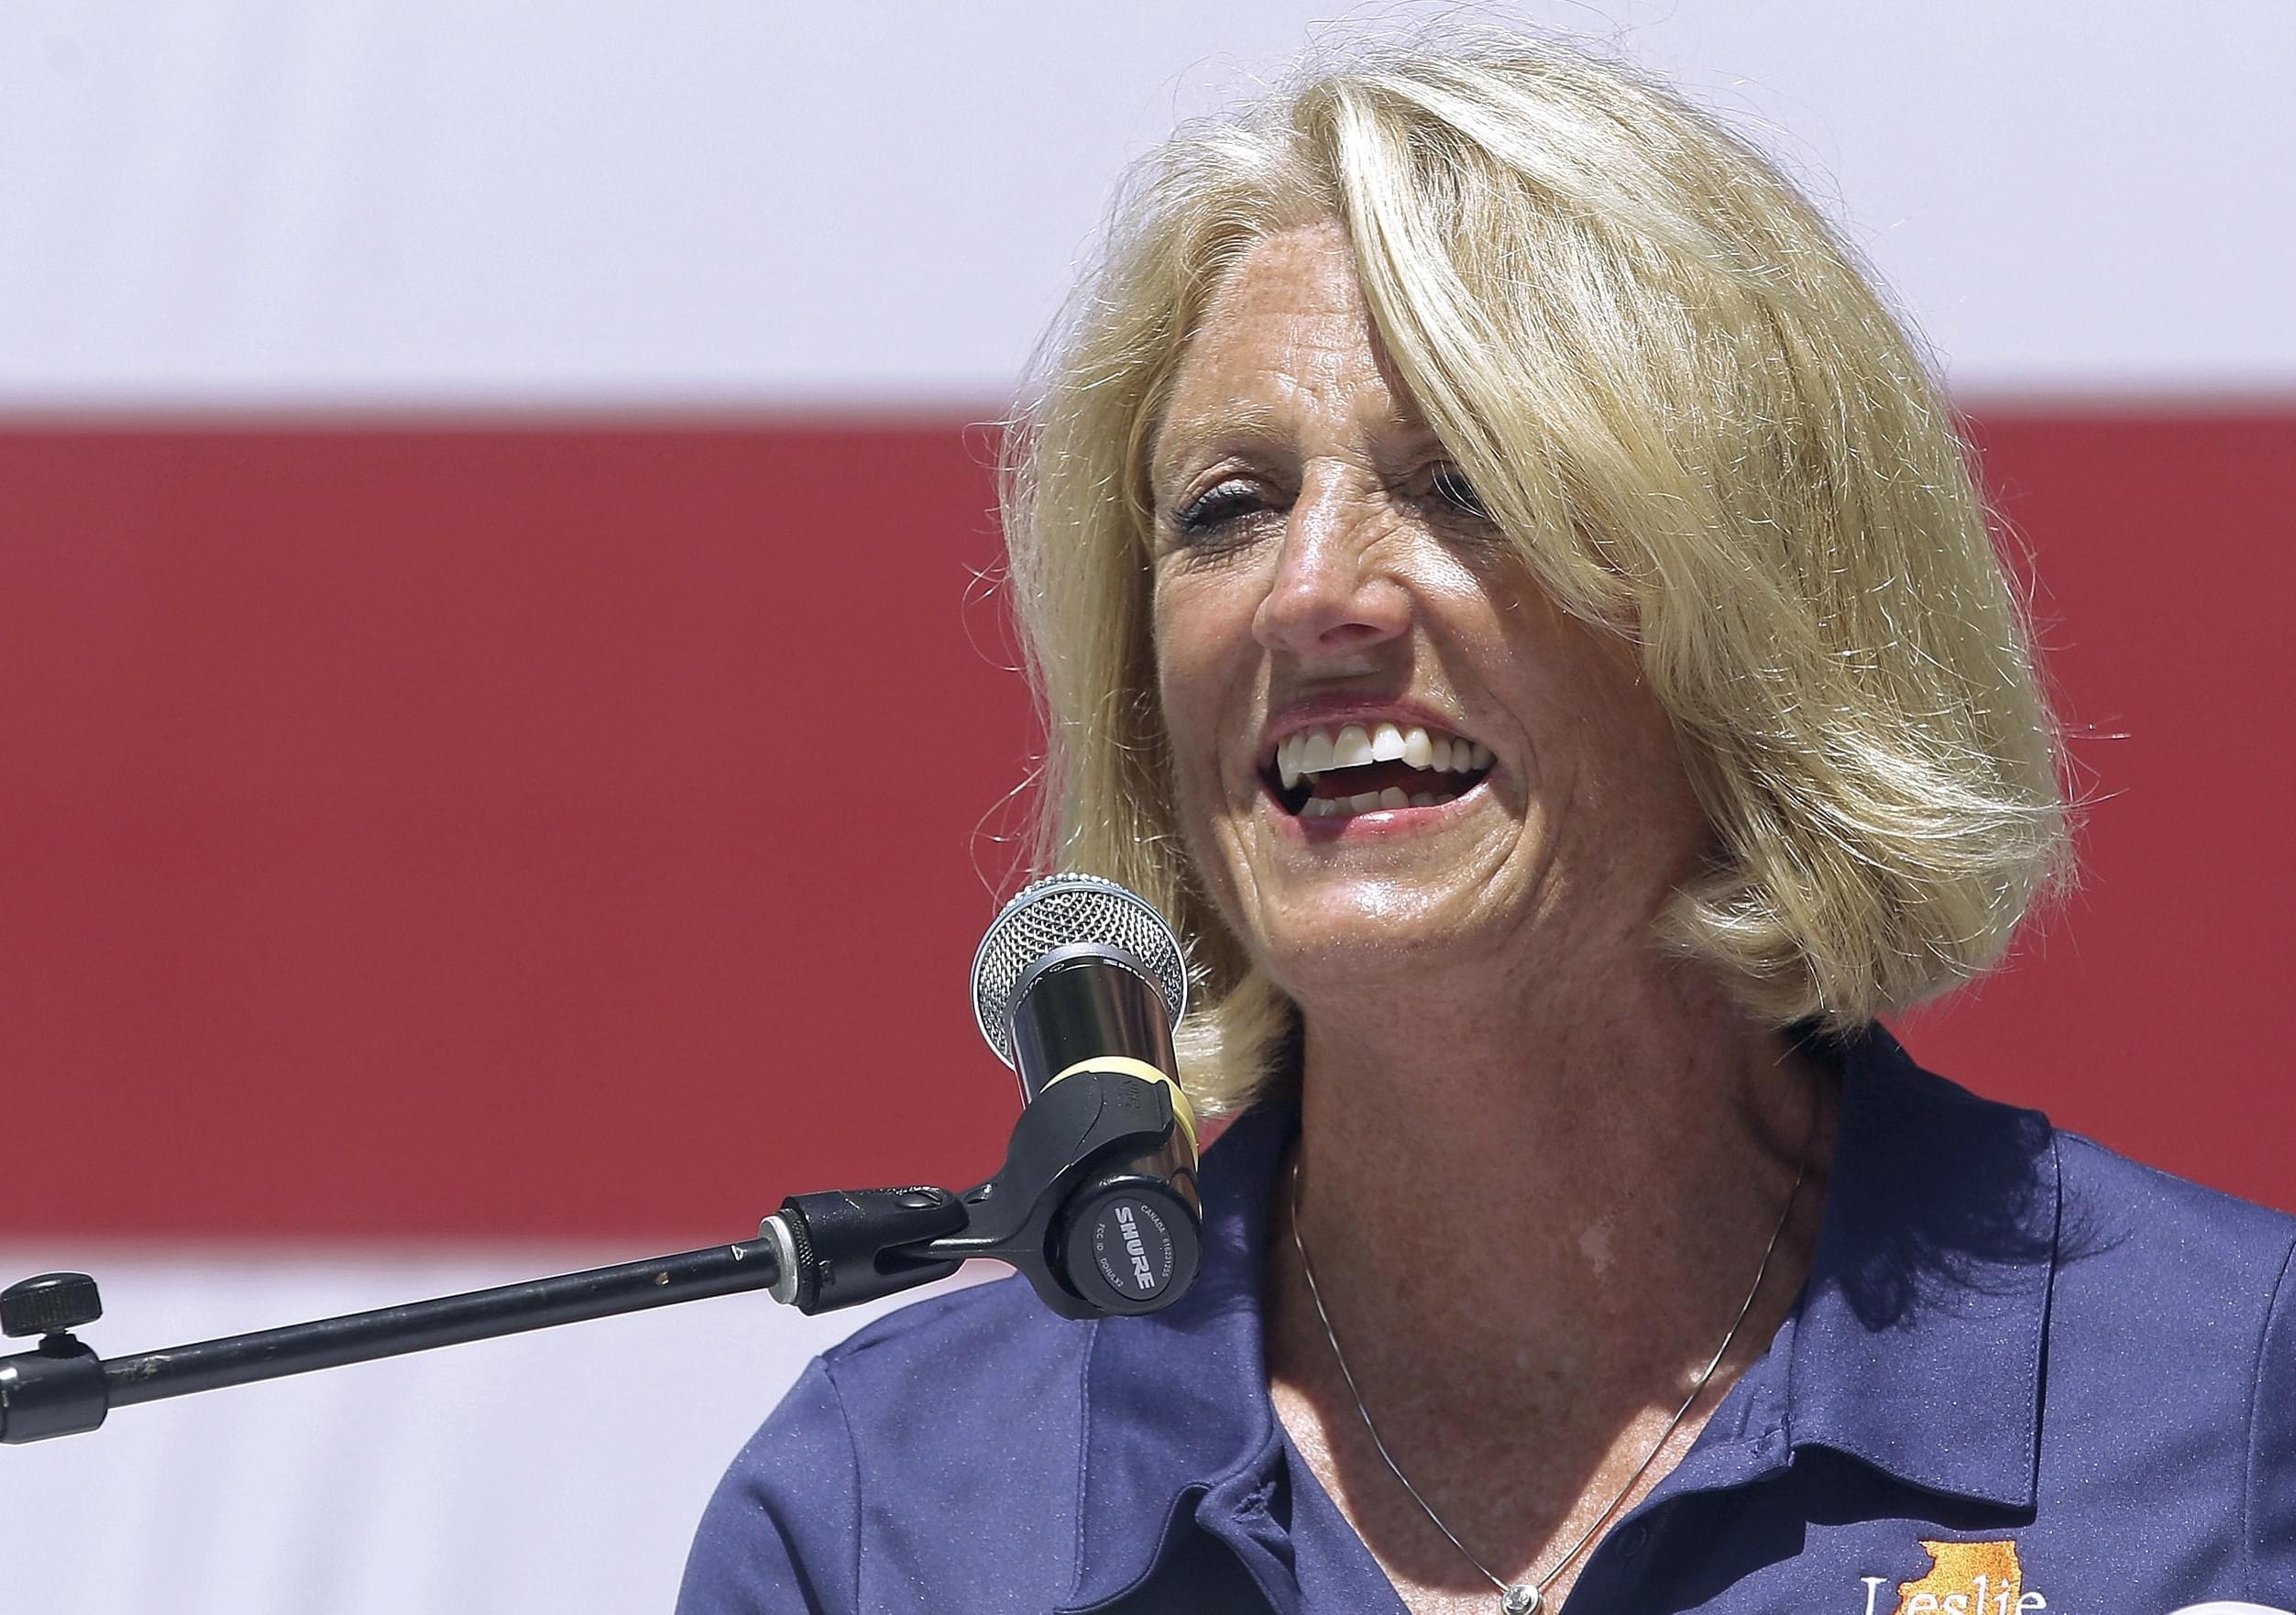 This Aug. 17, 2016, file photo shows, then Republican Illinois state Comptroller Leslie Munger in Springfield, Ill. Illinois Gov. Bruce Rauner has hired former state Comptroller Munger to serve as a deputy governor.